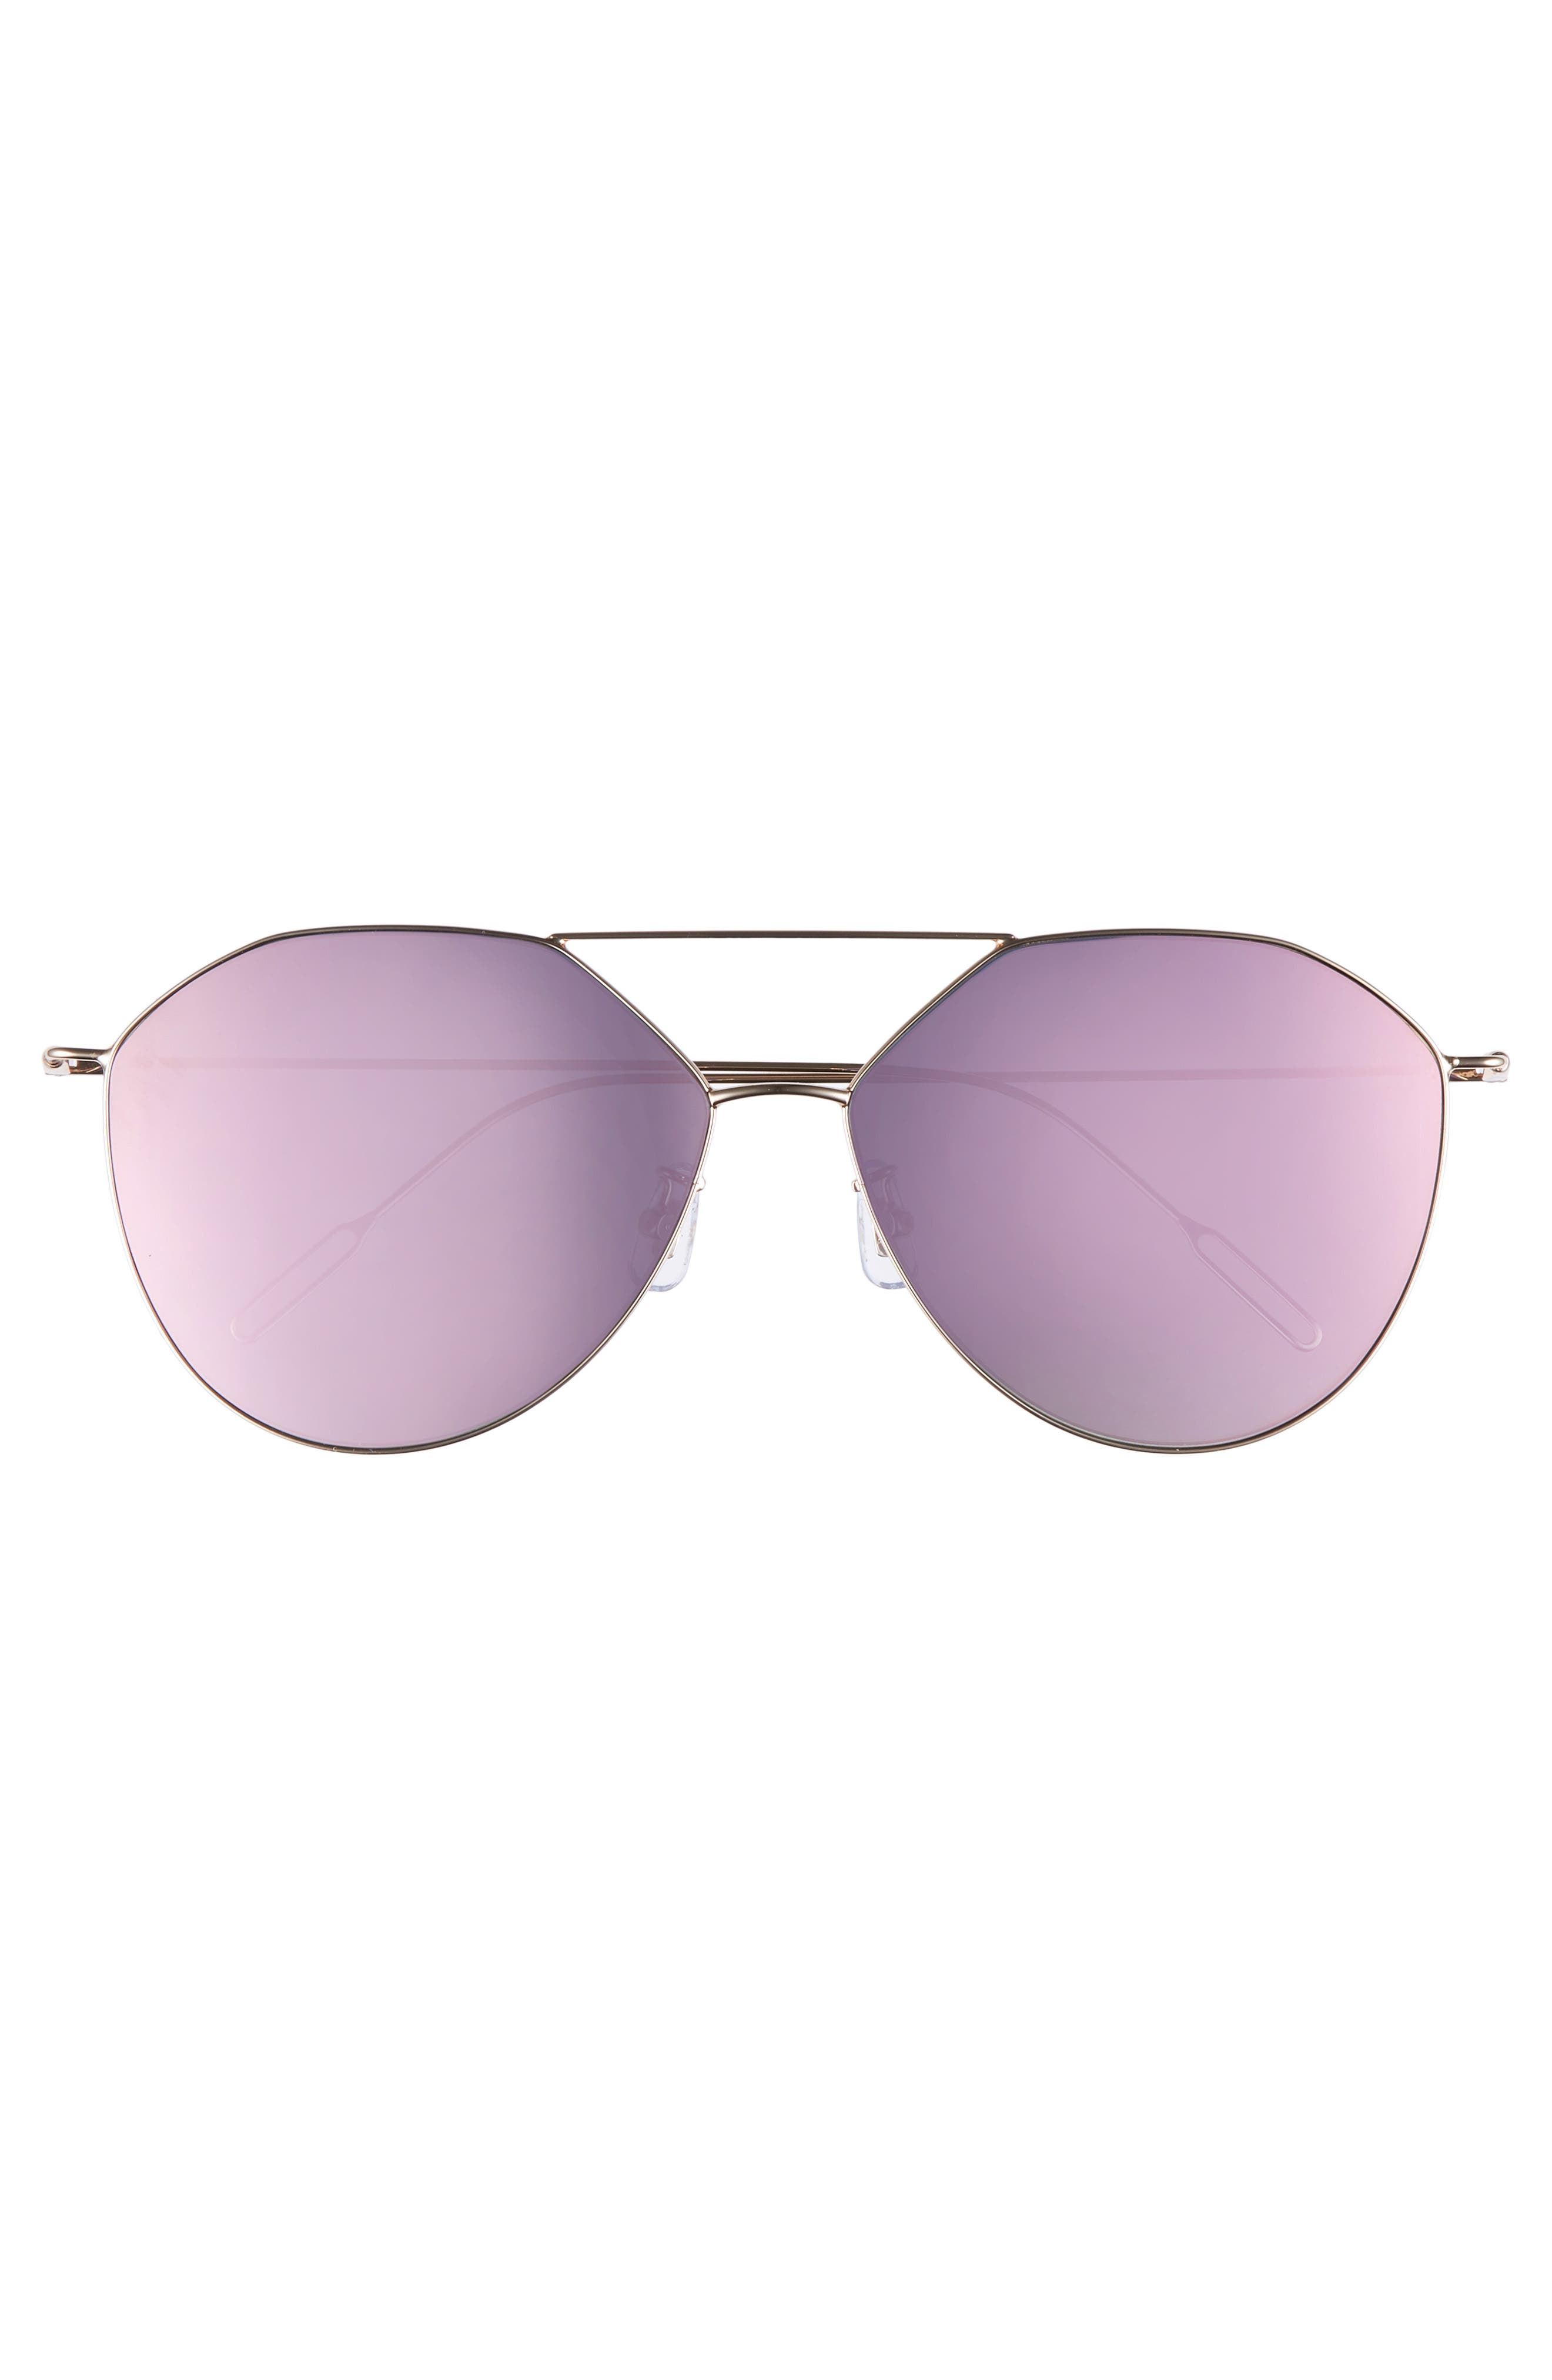 55mm Metal Aviator Sunglasses,                             Alternate thumbnail 3, color,                             GOLD /PINK MIRROR